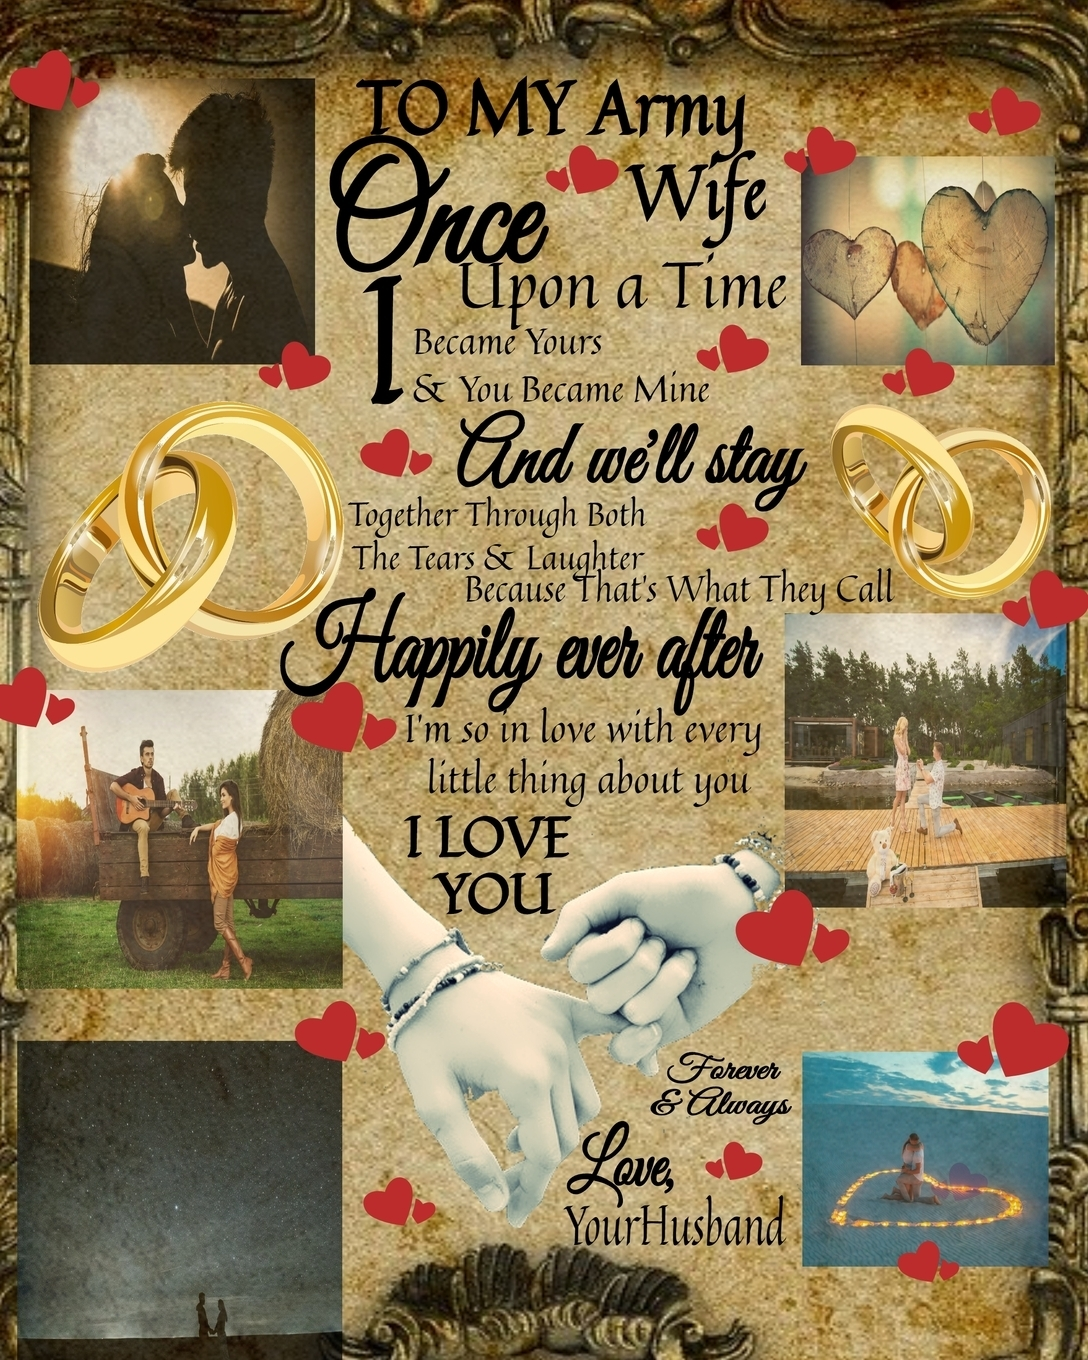 Scarlette Heart. To My Army Wife Once Upon A Time I Became Yours & You Became Mine And We'll Stay Together Through Both The Tears & Laughter. 14th Anniversary Gifts For Her - Blank Paperback Composition Book To Write In What You Love To Do - Couple Portrait